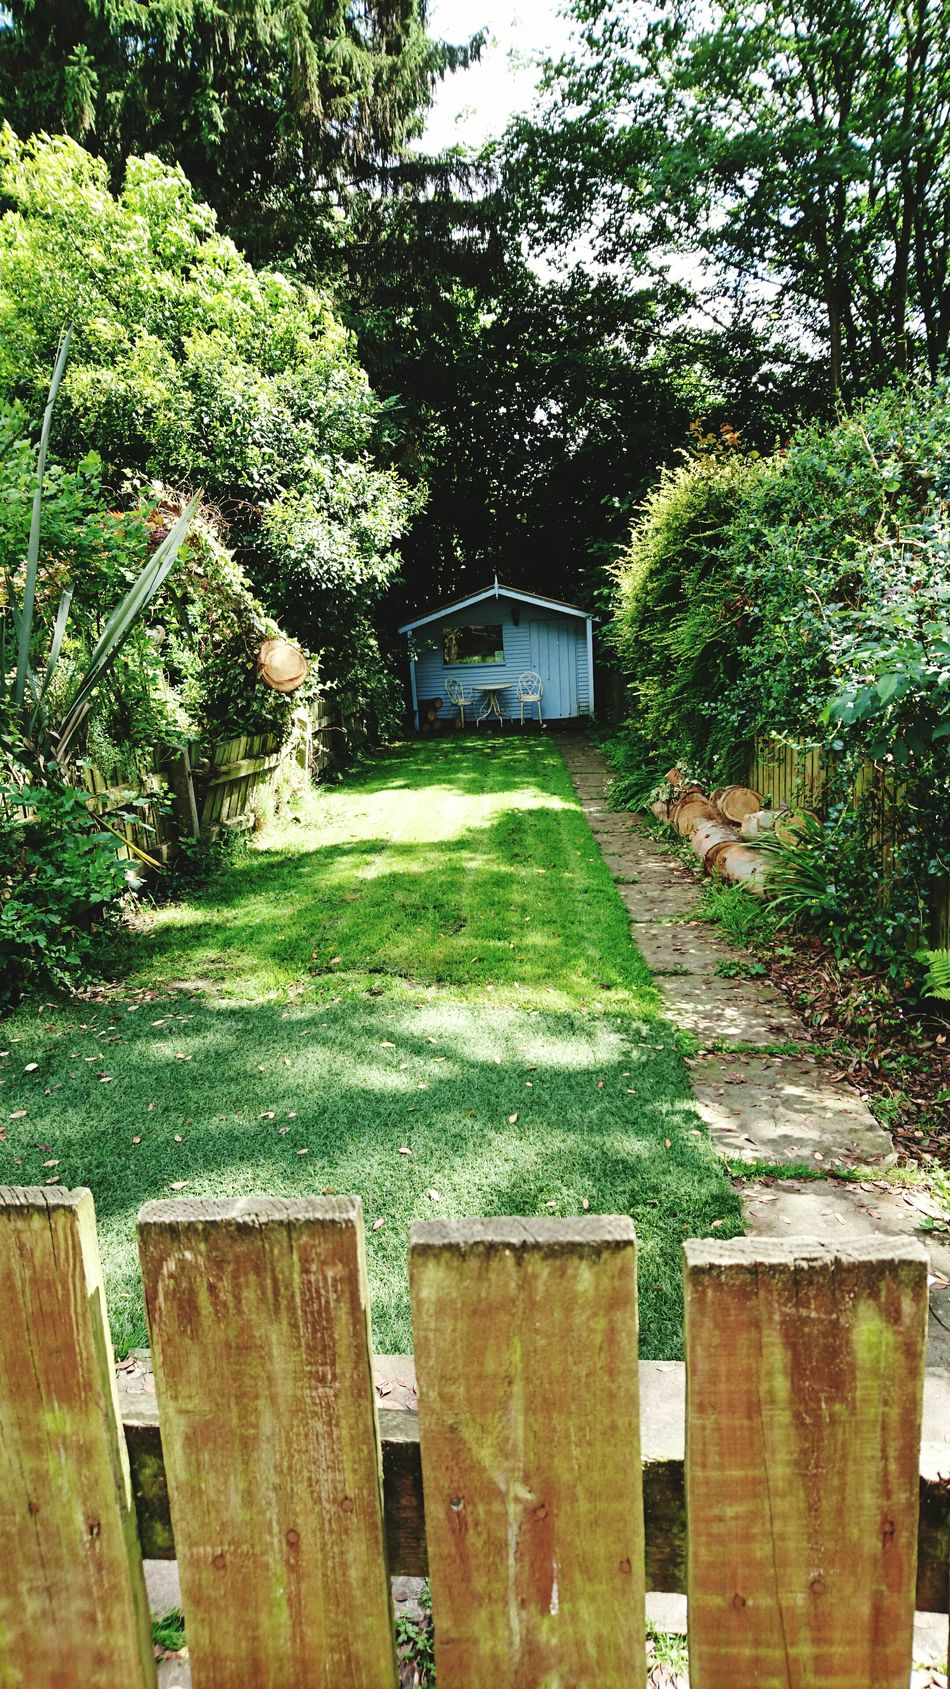 Garden Peace And Quiet Tranquility Green Nature On Your Doorstep Natural Beauty Lawn City Suburb Away From It All Hidden Places Check This Out Taking Photos Hello World Heaton Mersey, Stockport, UK.